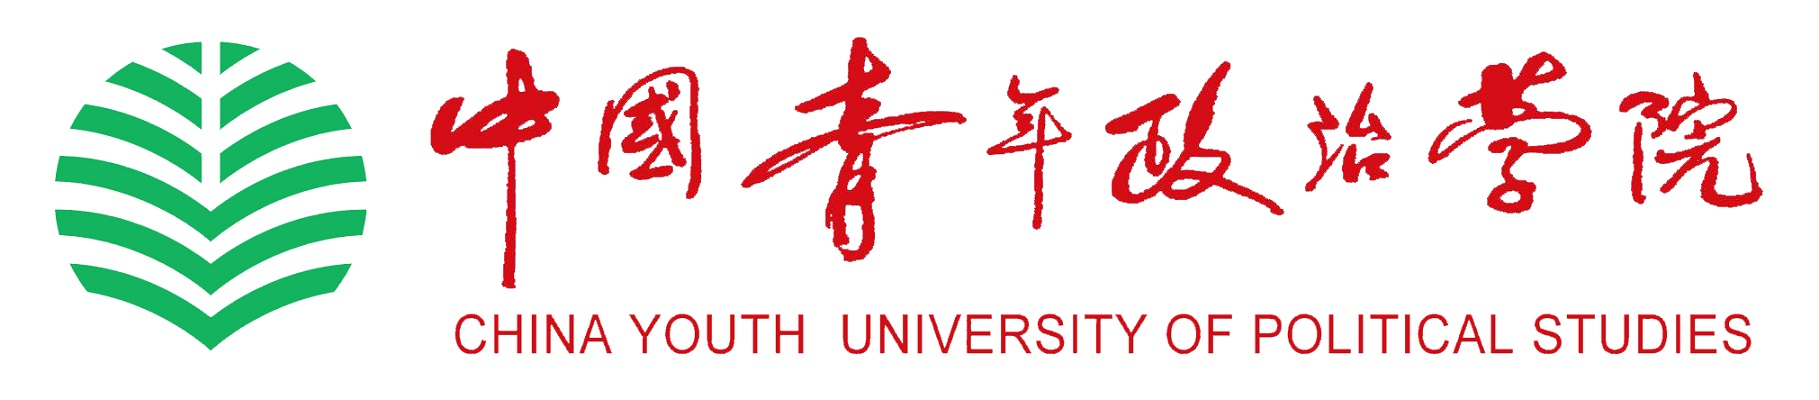 China Youth University for Political Sciences-logo